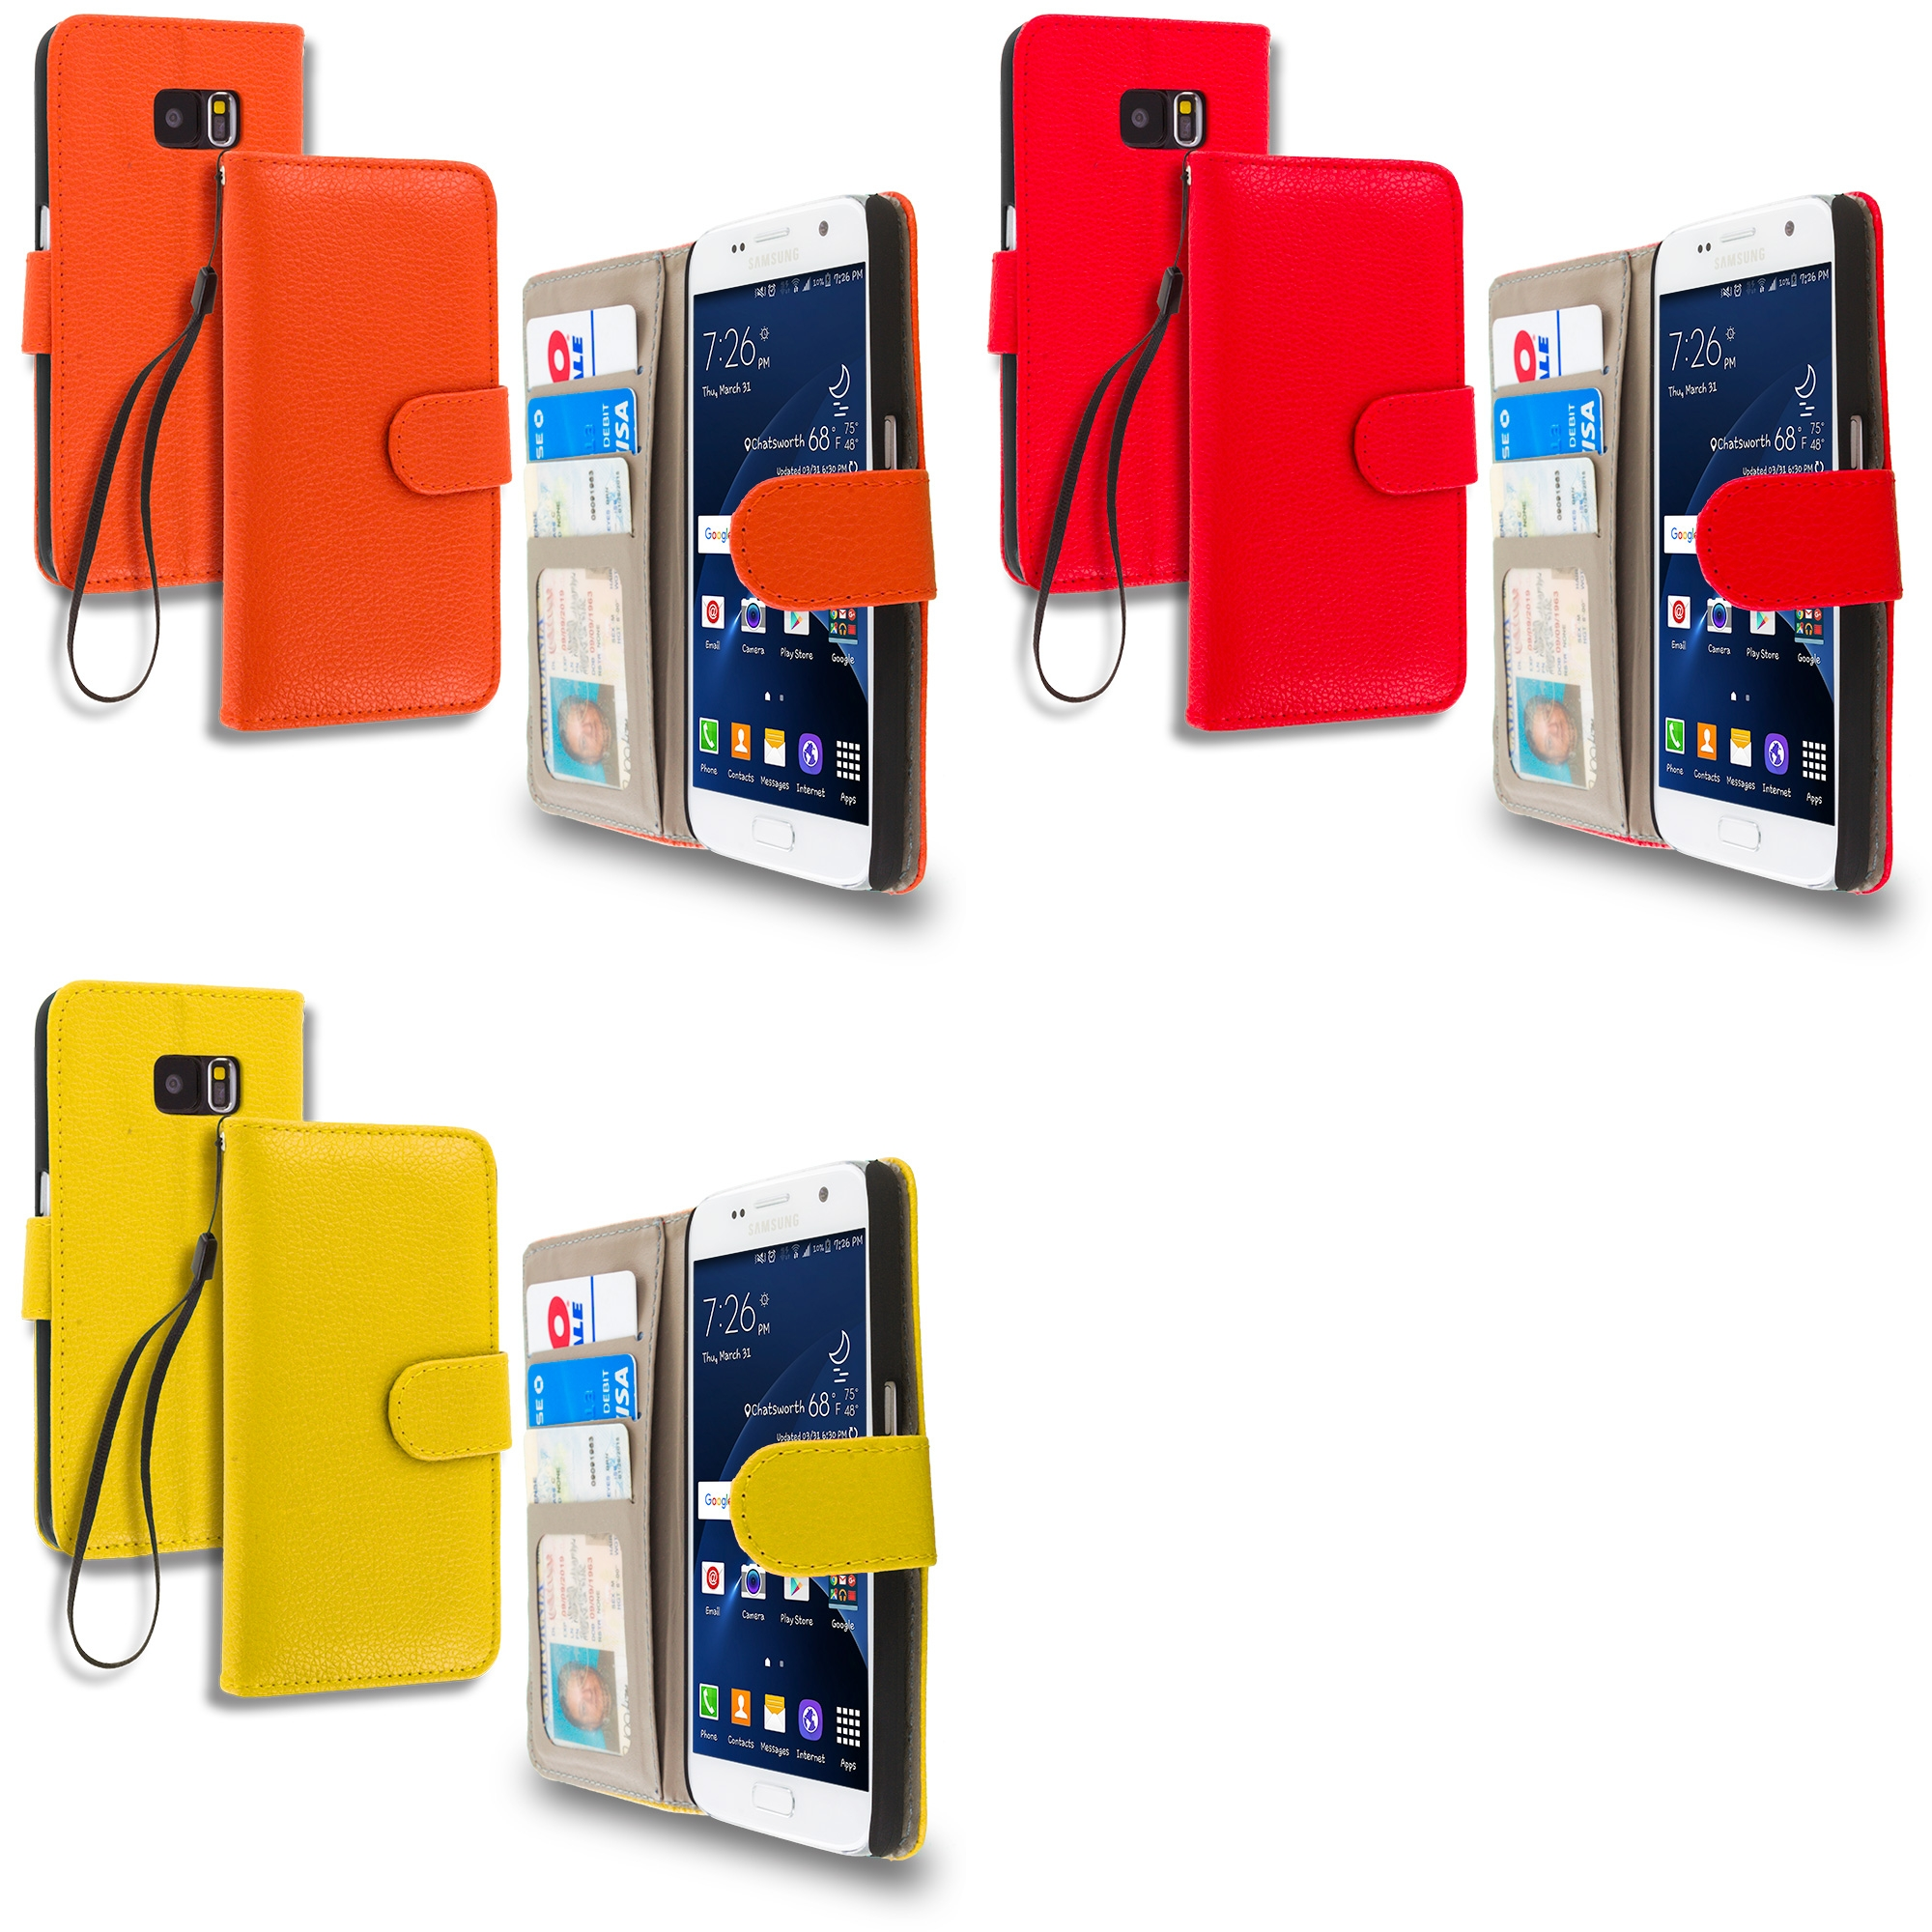 Samsung Galaxy S7 Combo Pack : Red Leather Wallet Pouch Case Cover with Slots